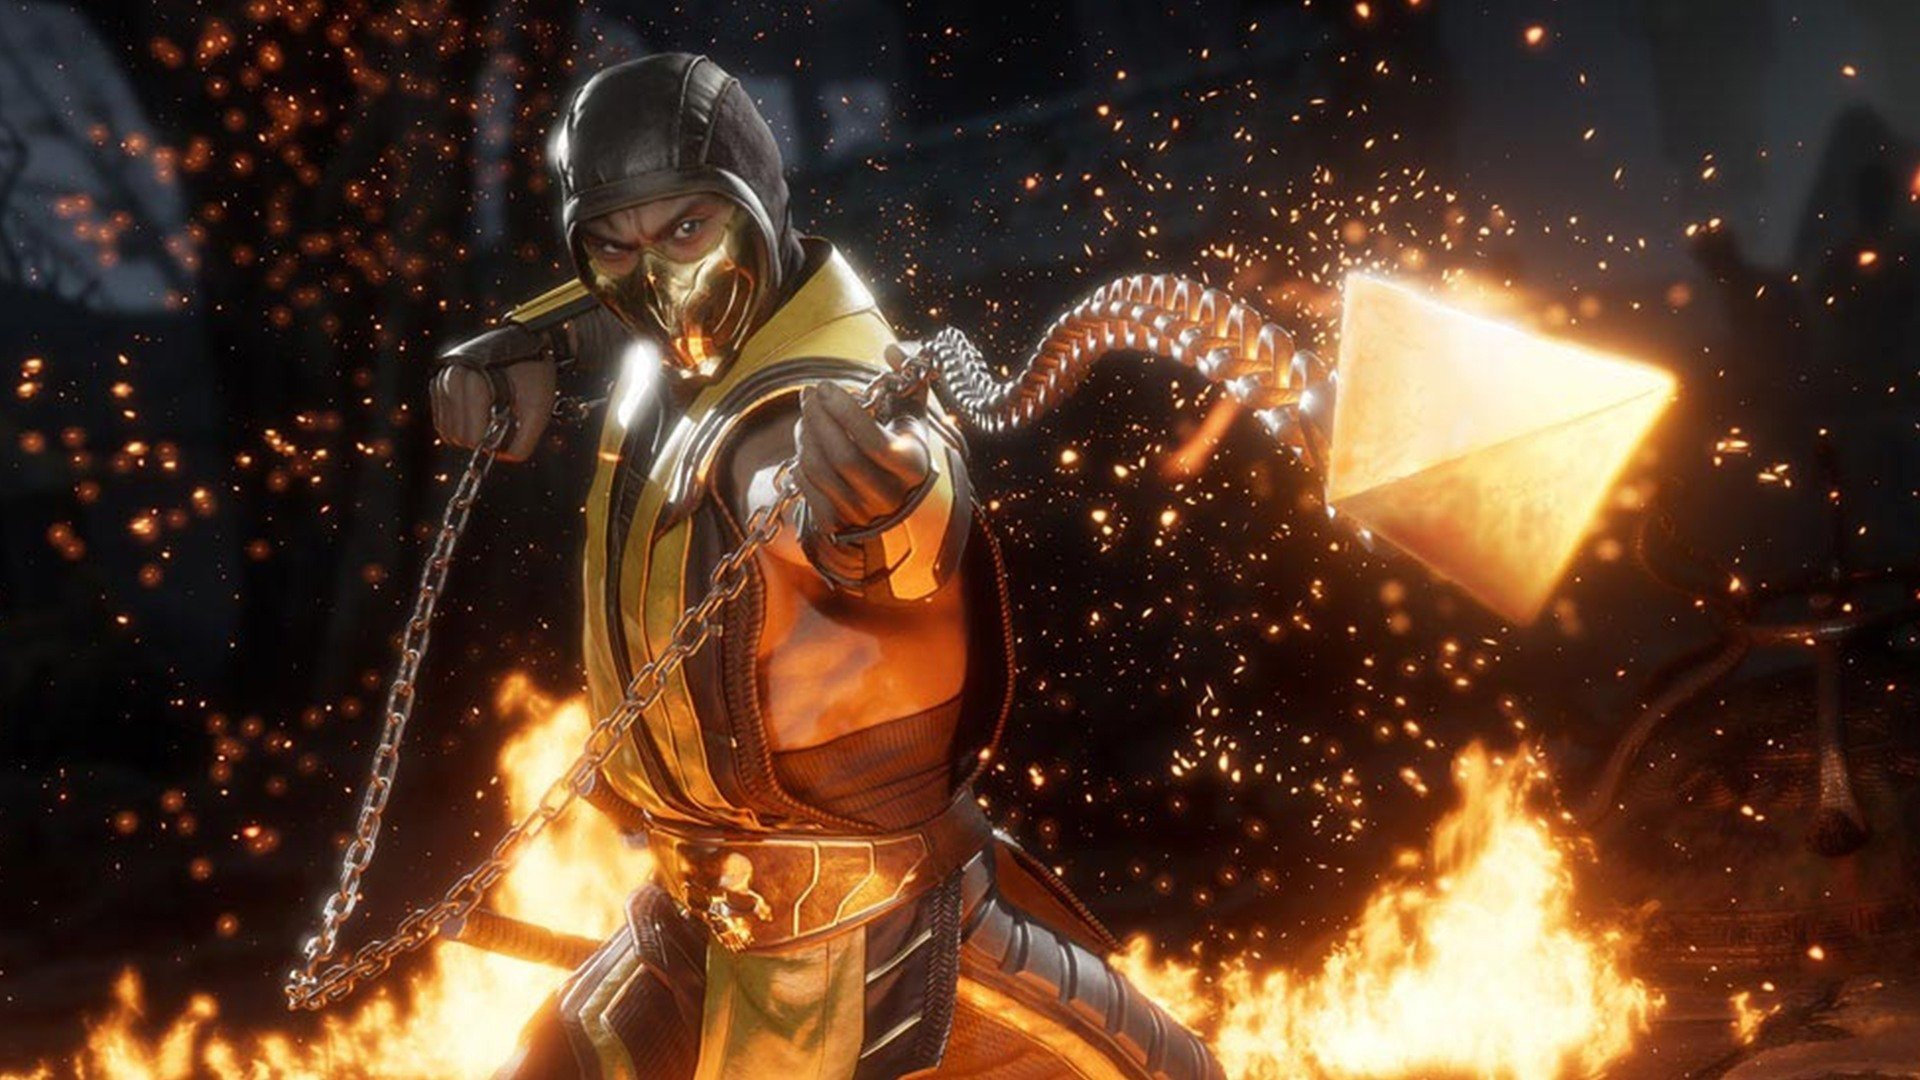 Mortal Kombat 11 PS4 Beta Announced, Access Locked To Pre